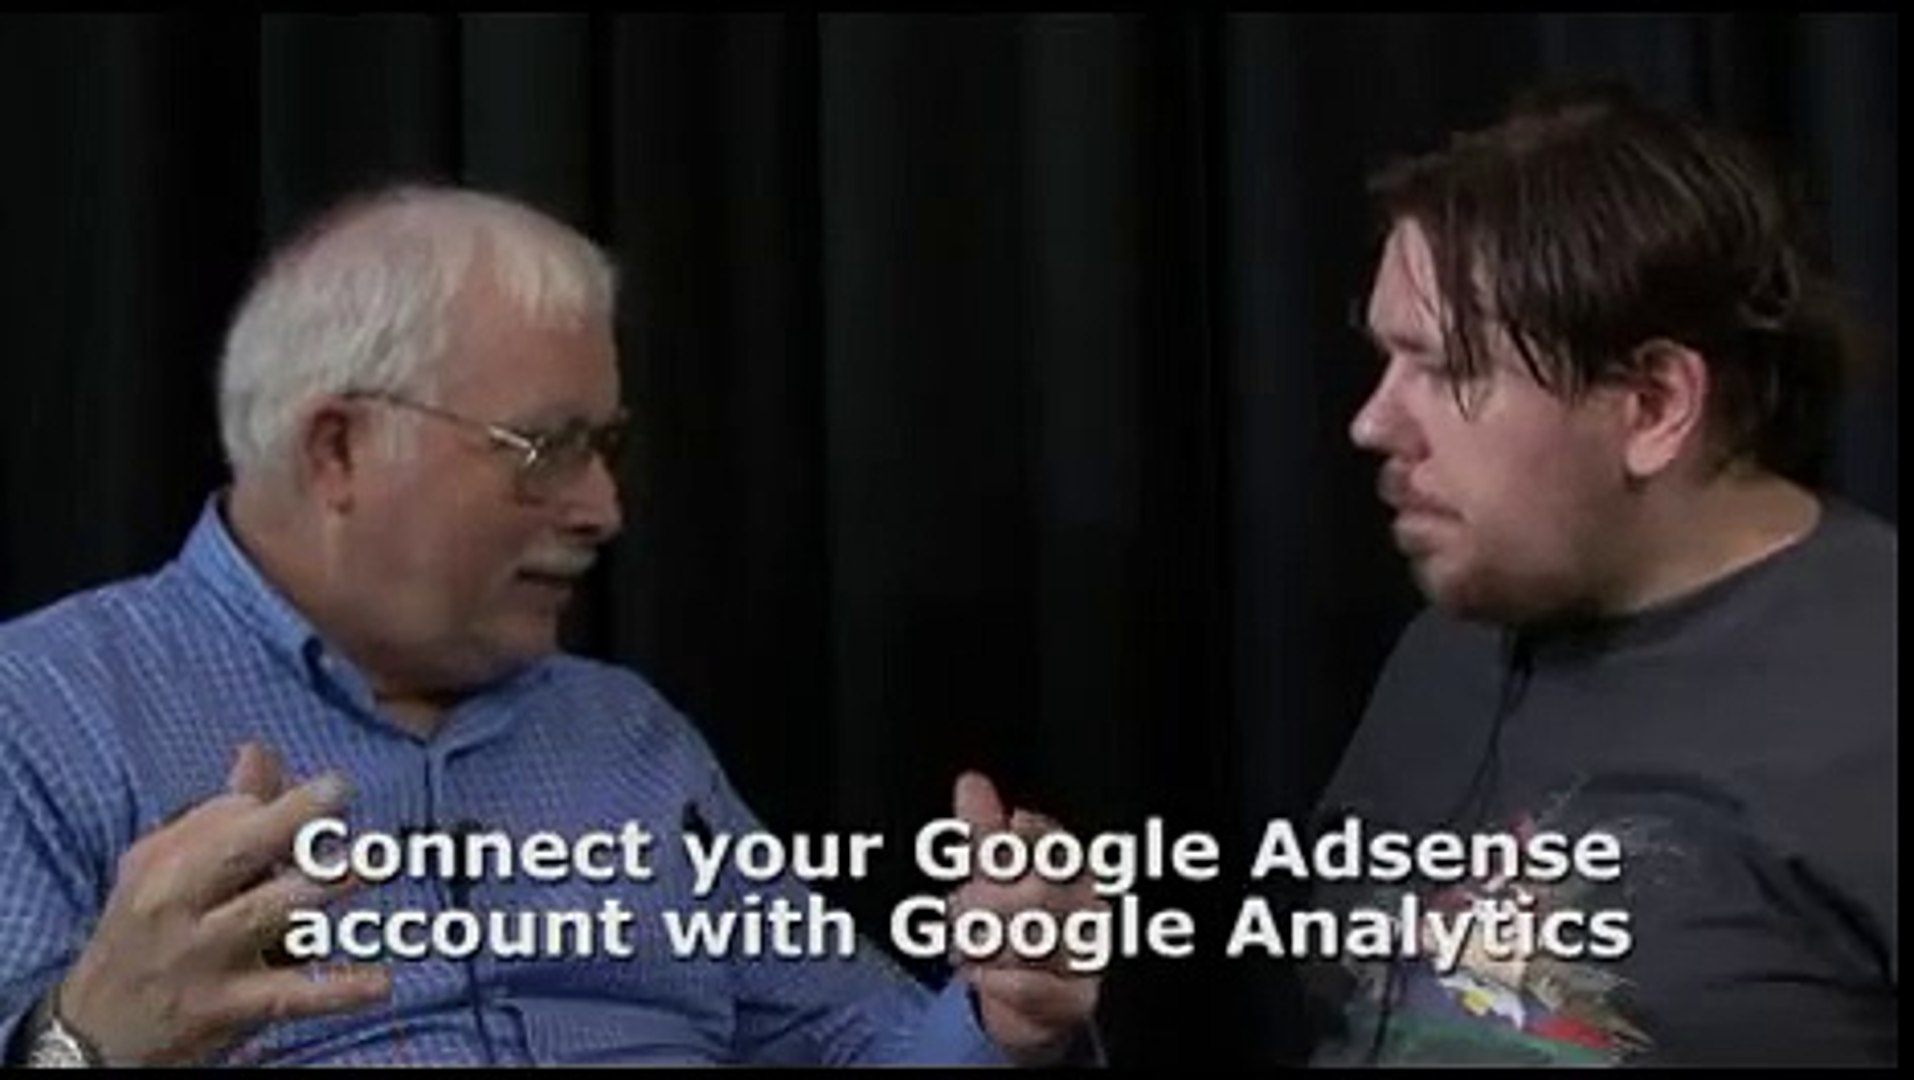 How to Boost AdSense Earnings with Google Analytics - Aaron Wall